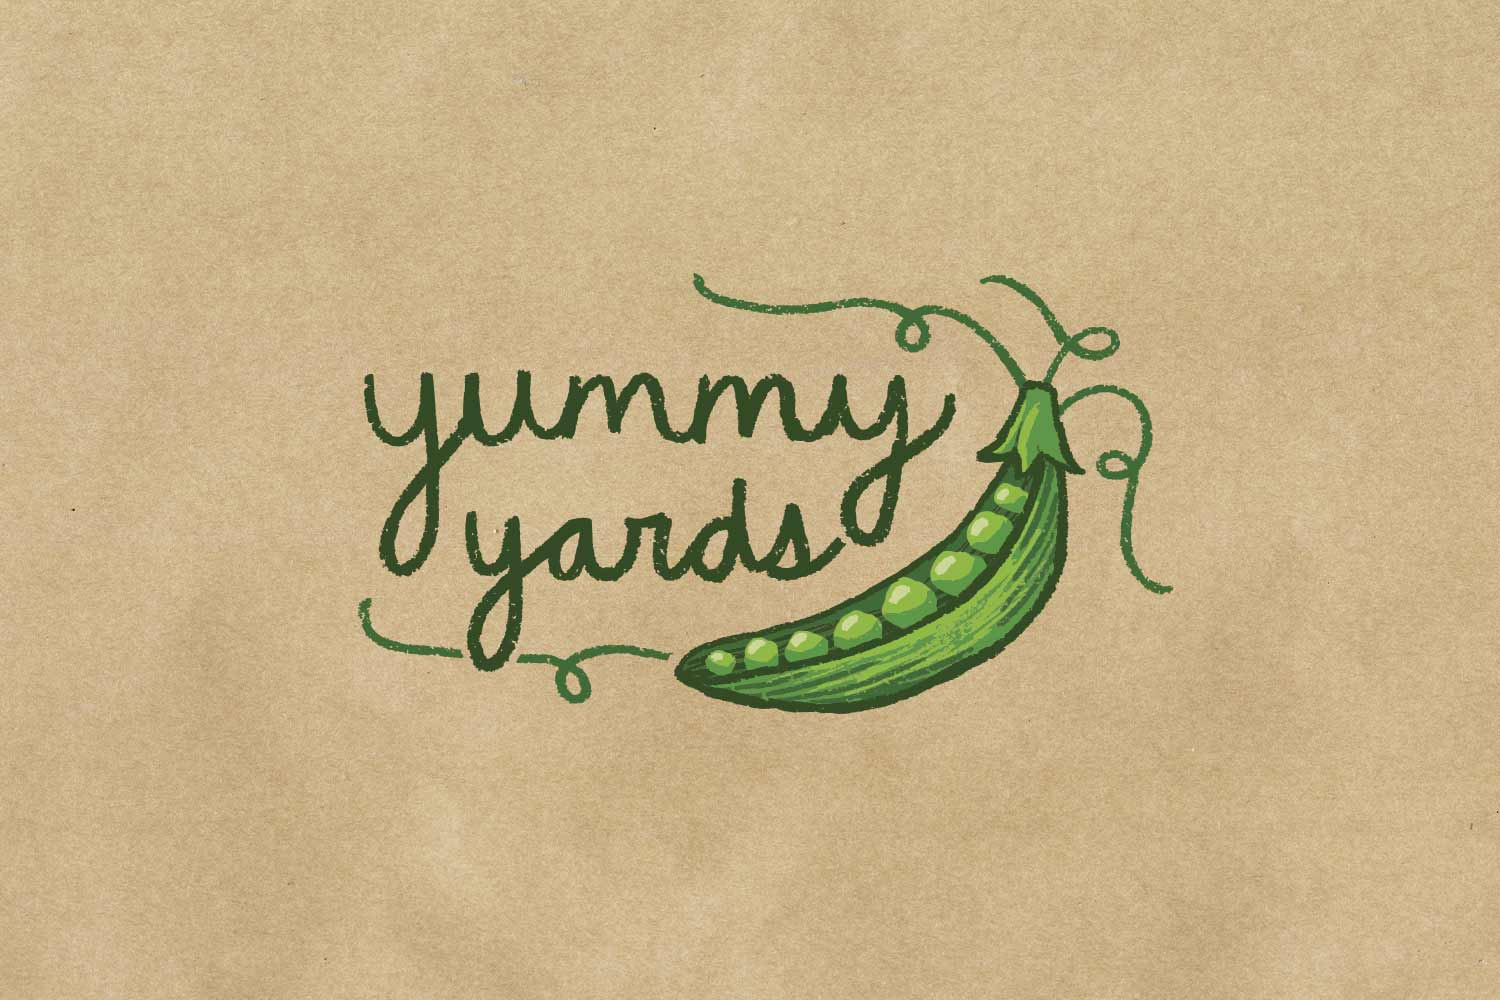 Vancouver Yummy Yards logo design